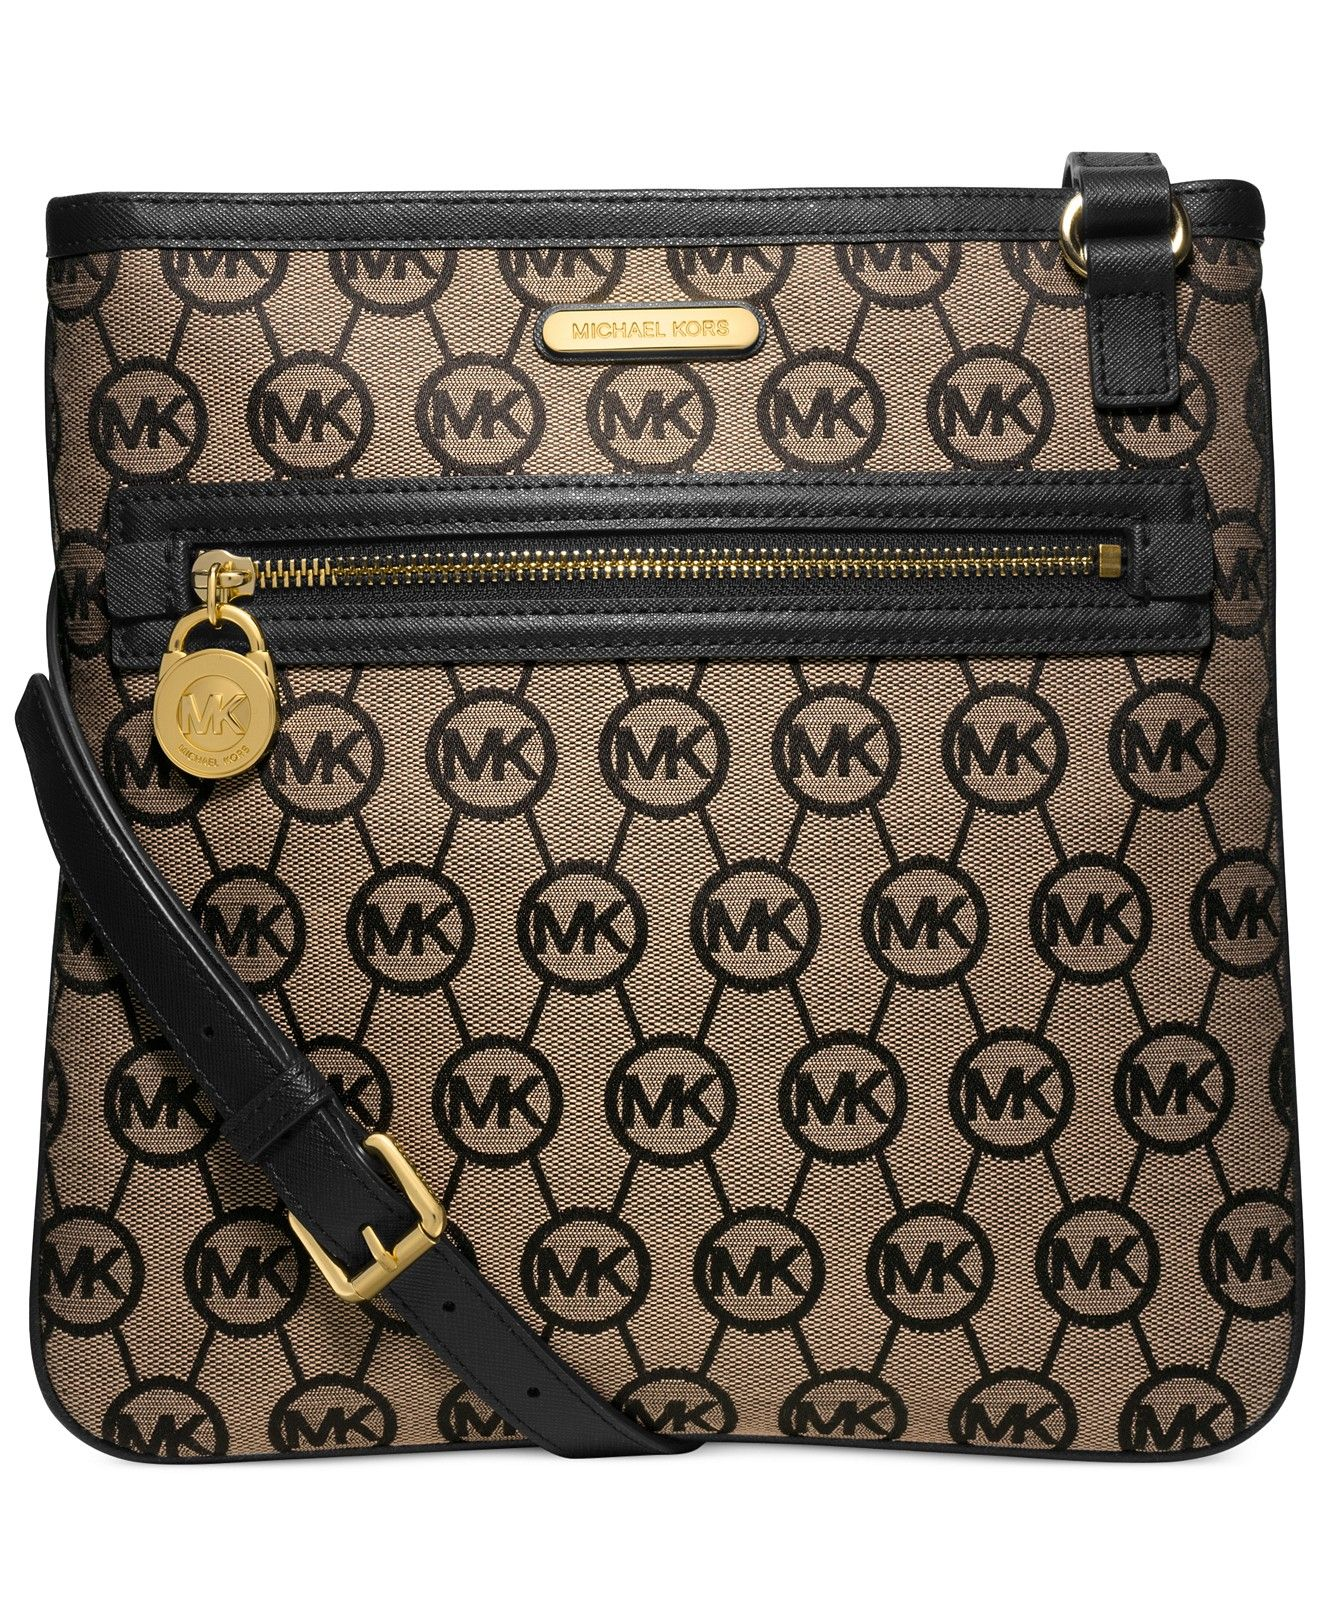 MICHAEL Michael Kors Kempton Large Crossbody - MICHAEL Michael Kors -  Handbags \u0026 Accessories - Macy\u0027s